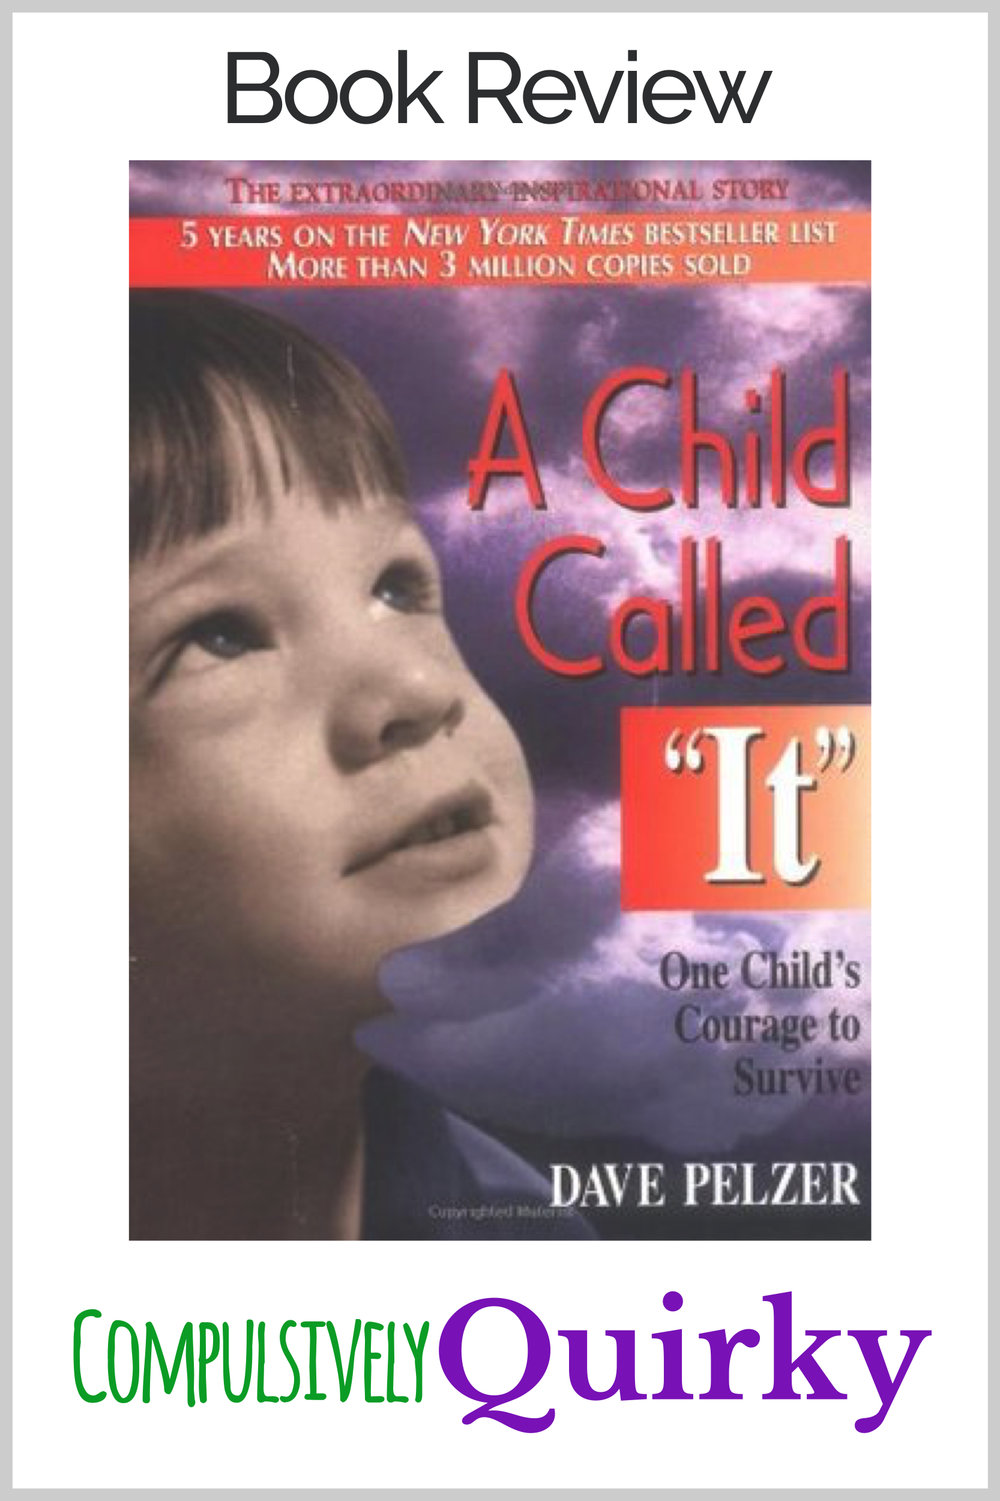 A Child Called It by Dave Pelzer ~ book reivew on Compulsively Quirky